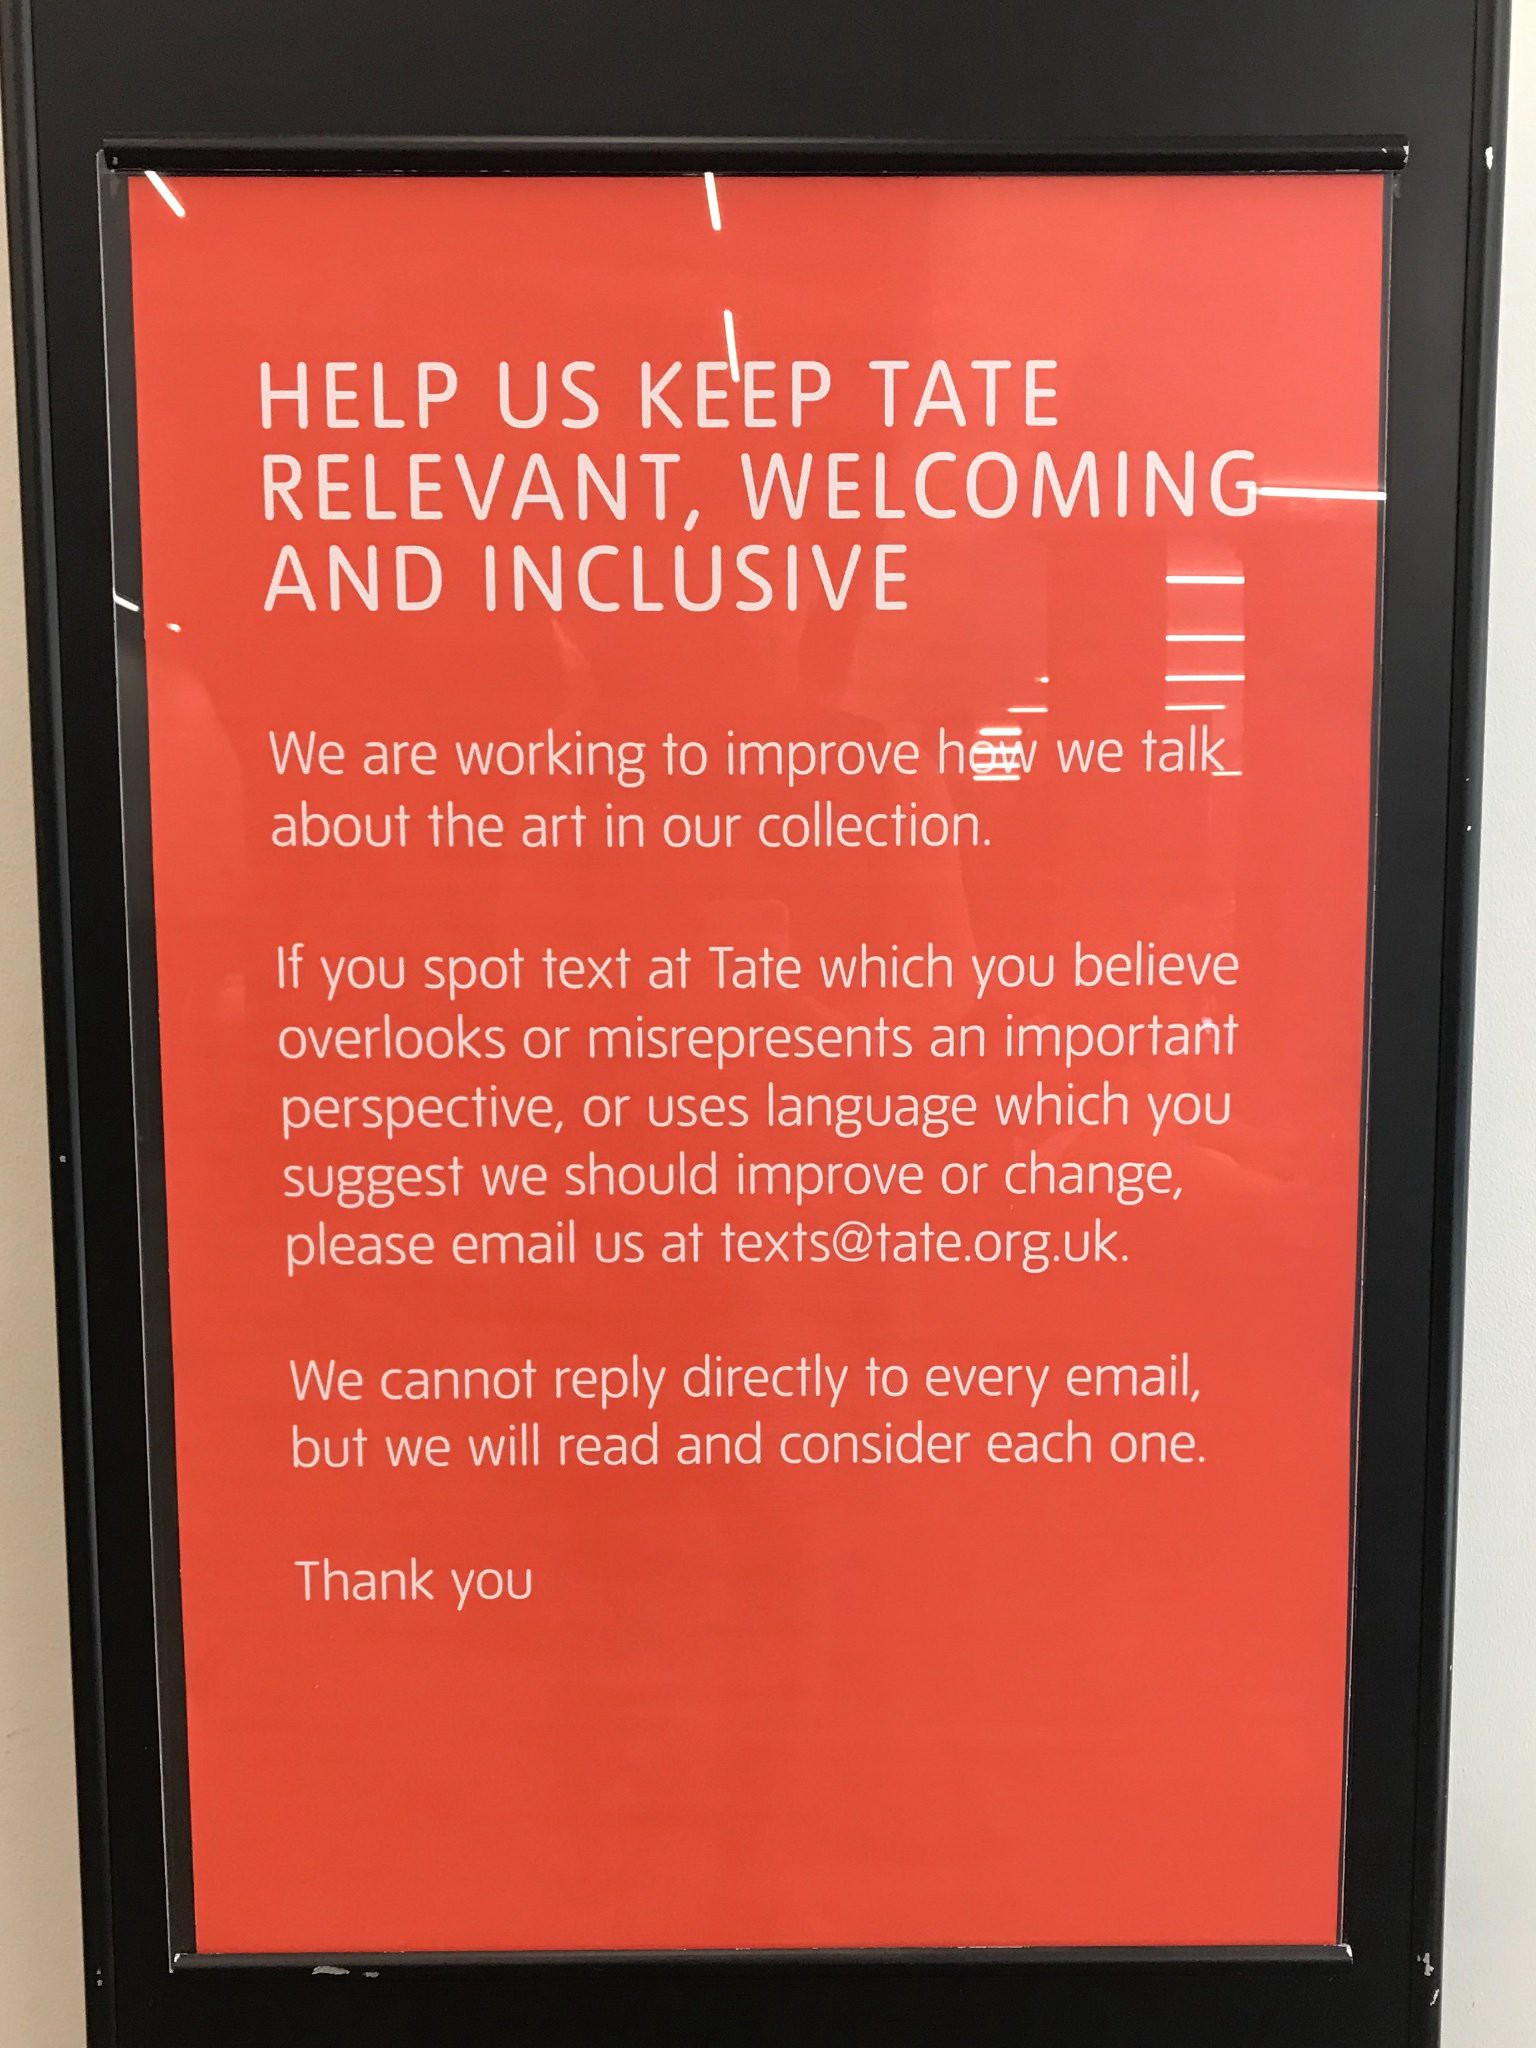 A text-only sign from the Tate Museum with the headline: Help Us Keep Tate Relevant, Welcoming and Inclusive.